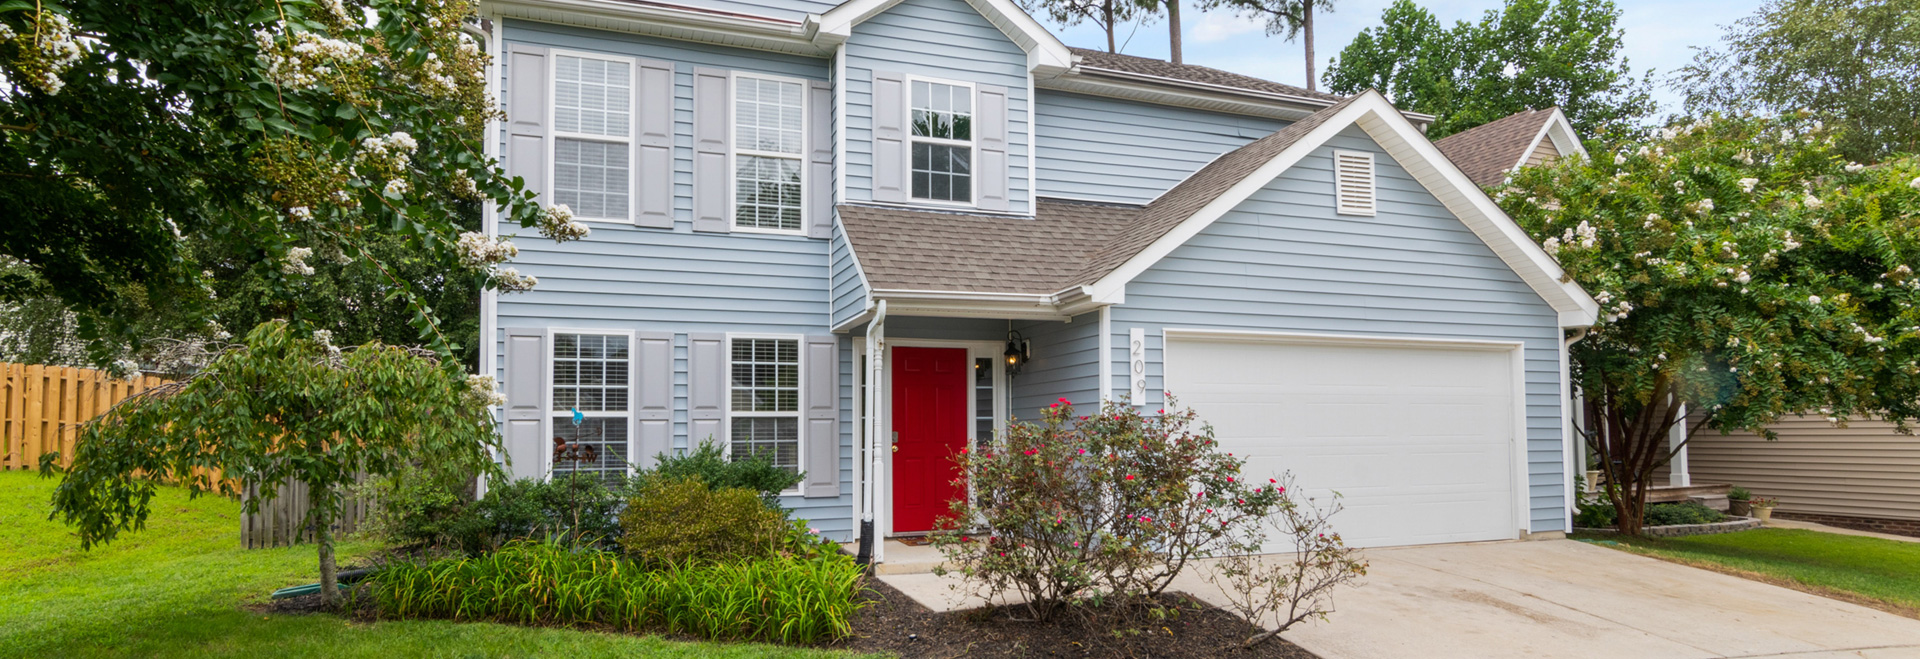 Home Update Ideas to Make Before Putting Your Home on the Market